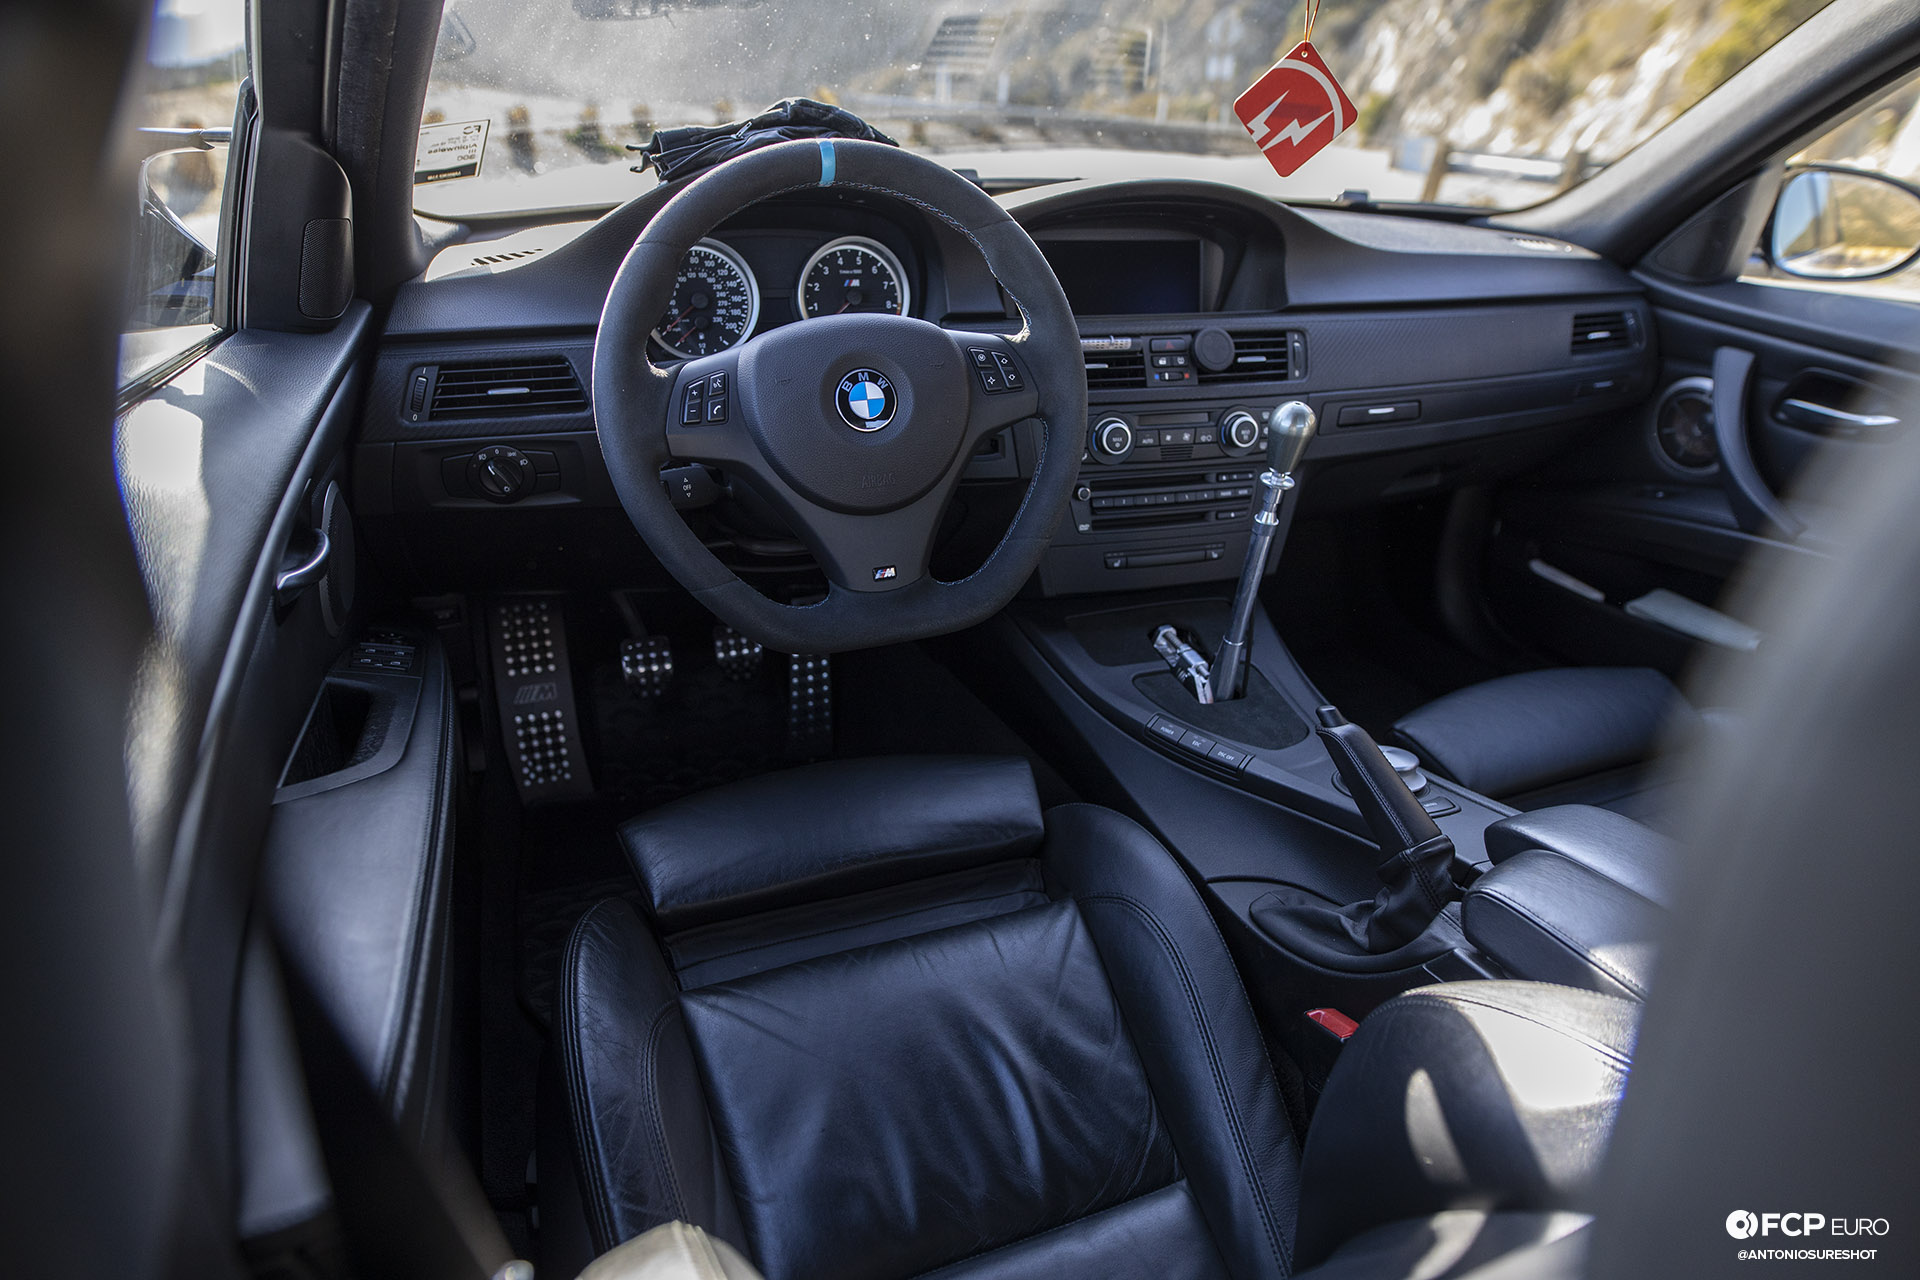 BMW E90 M3 Sedan Slicktop BBS E88 KW Suspension Interior